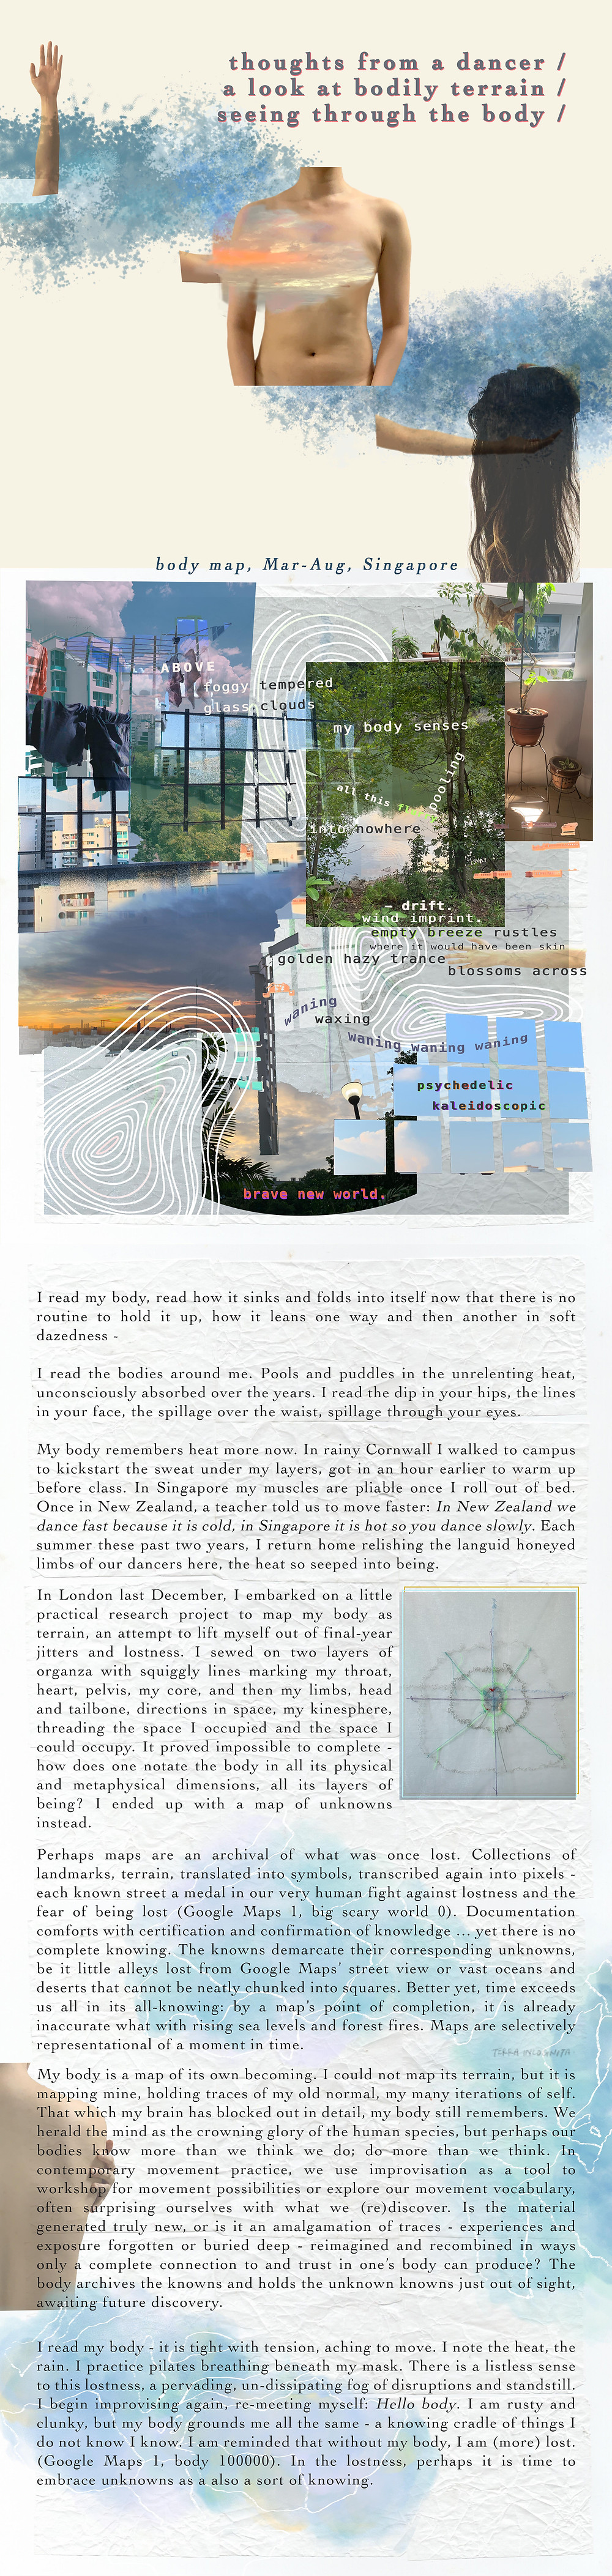 blurb magazine. blurbmag. mapping lostness, thoughts from a dancer. Yixuan Kwek. Arts & Culture. @blurb.mag